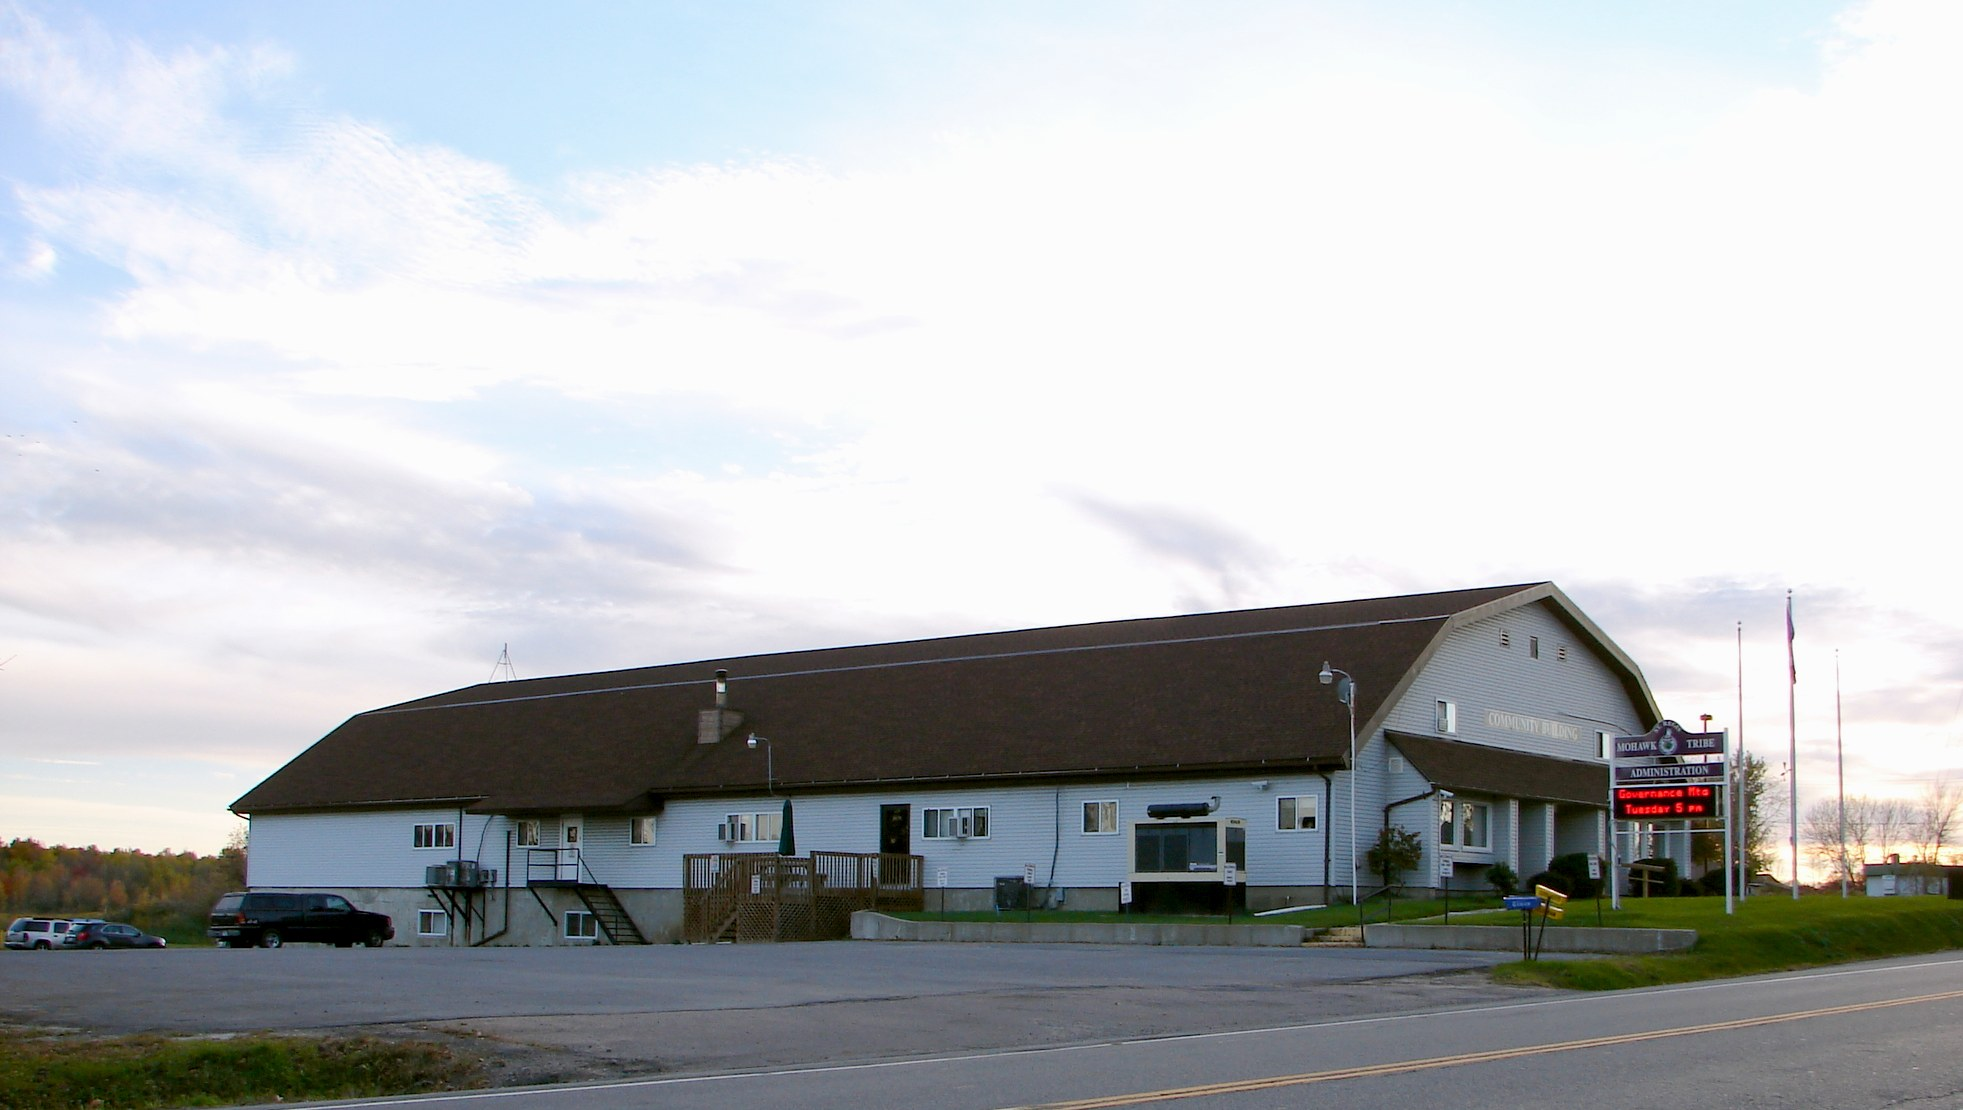 St. Regis Mohawk Tribe orders 20 non-citizens to leave reservation